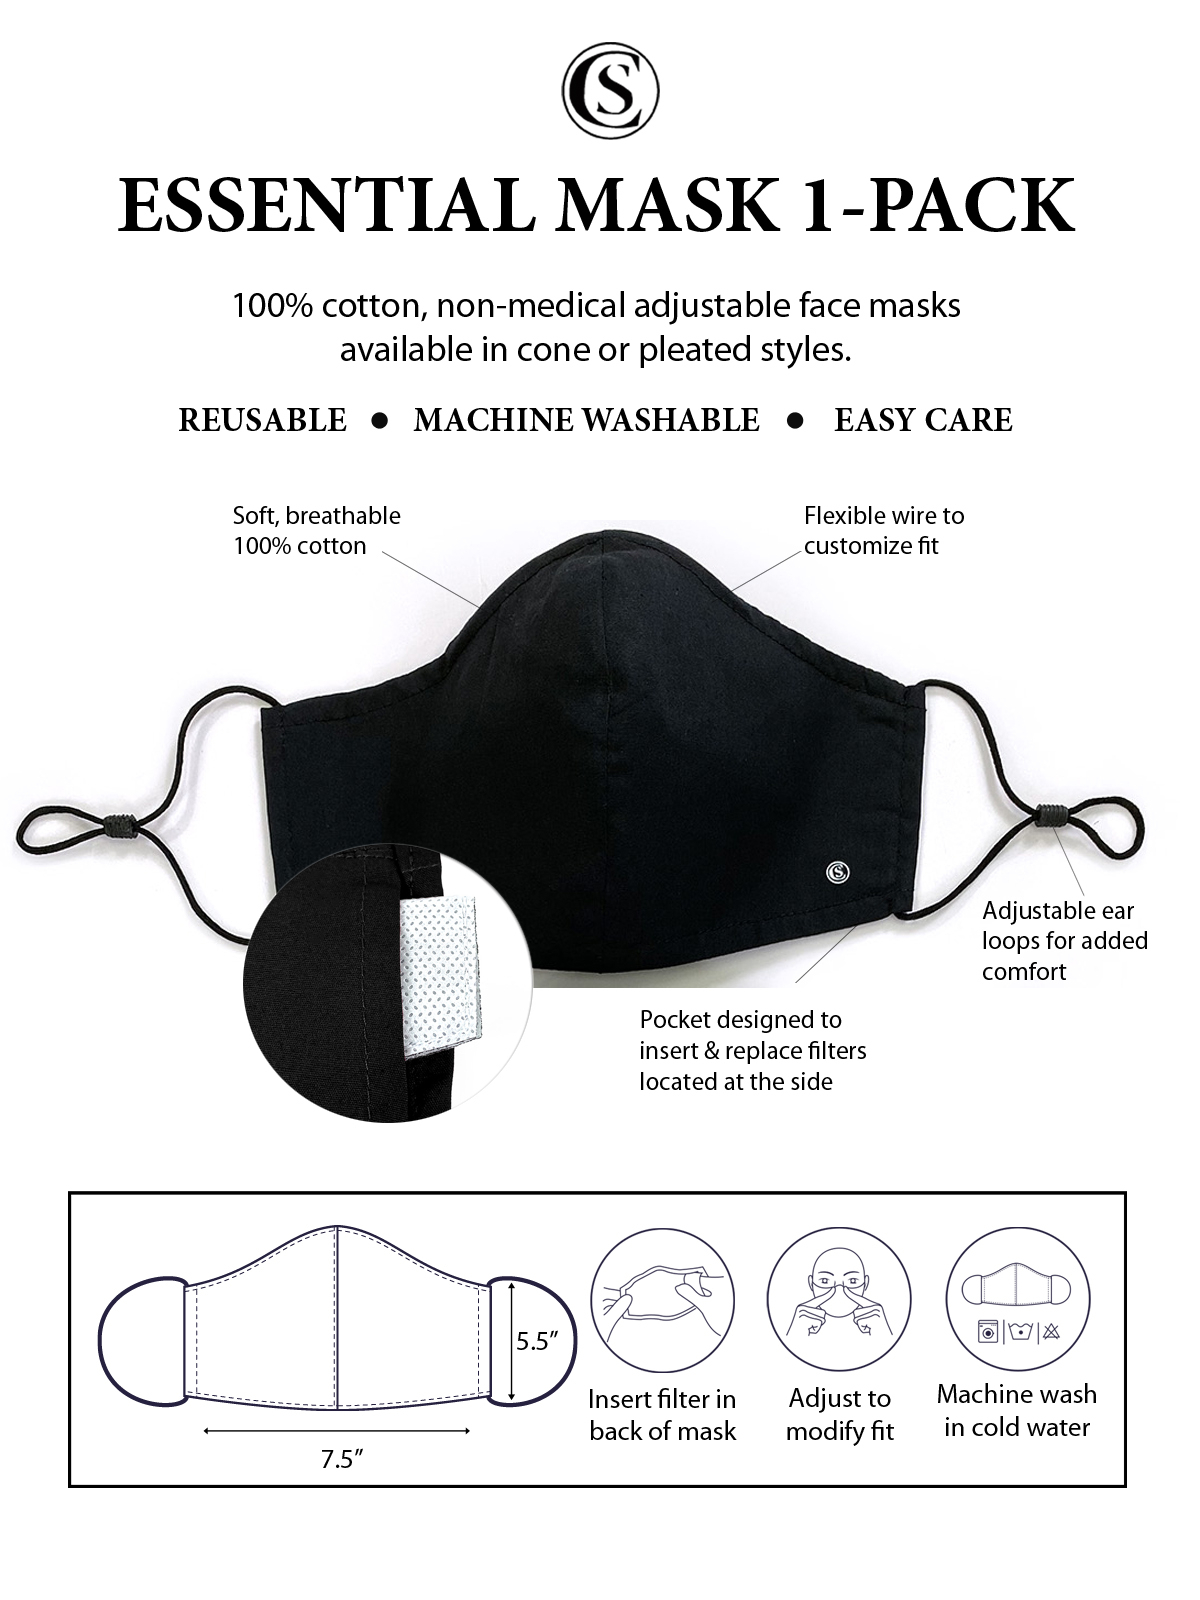 SOLID CONE MASK 1-PACK